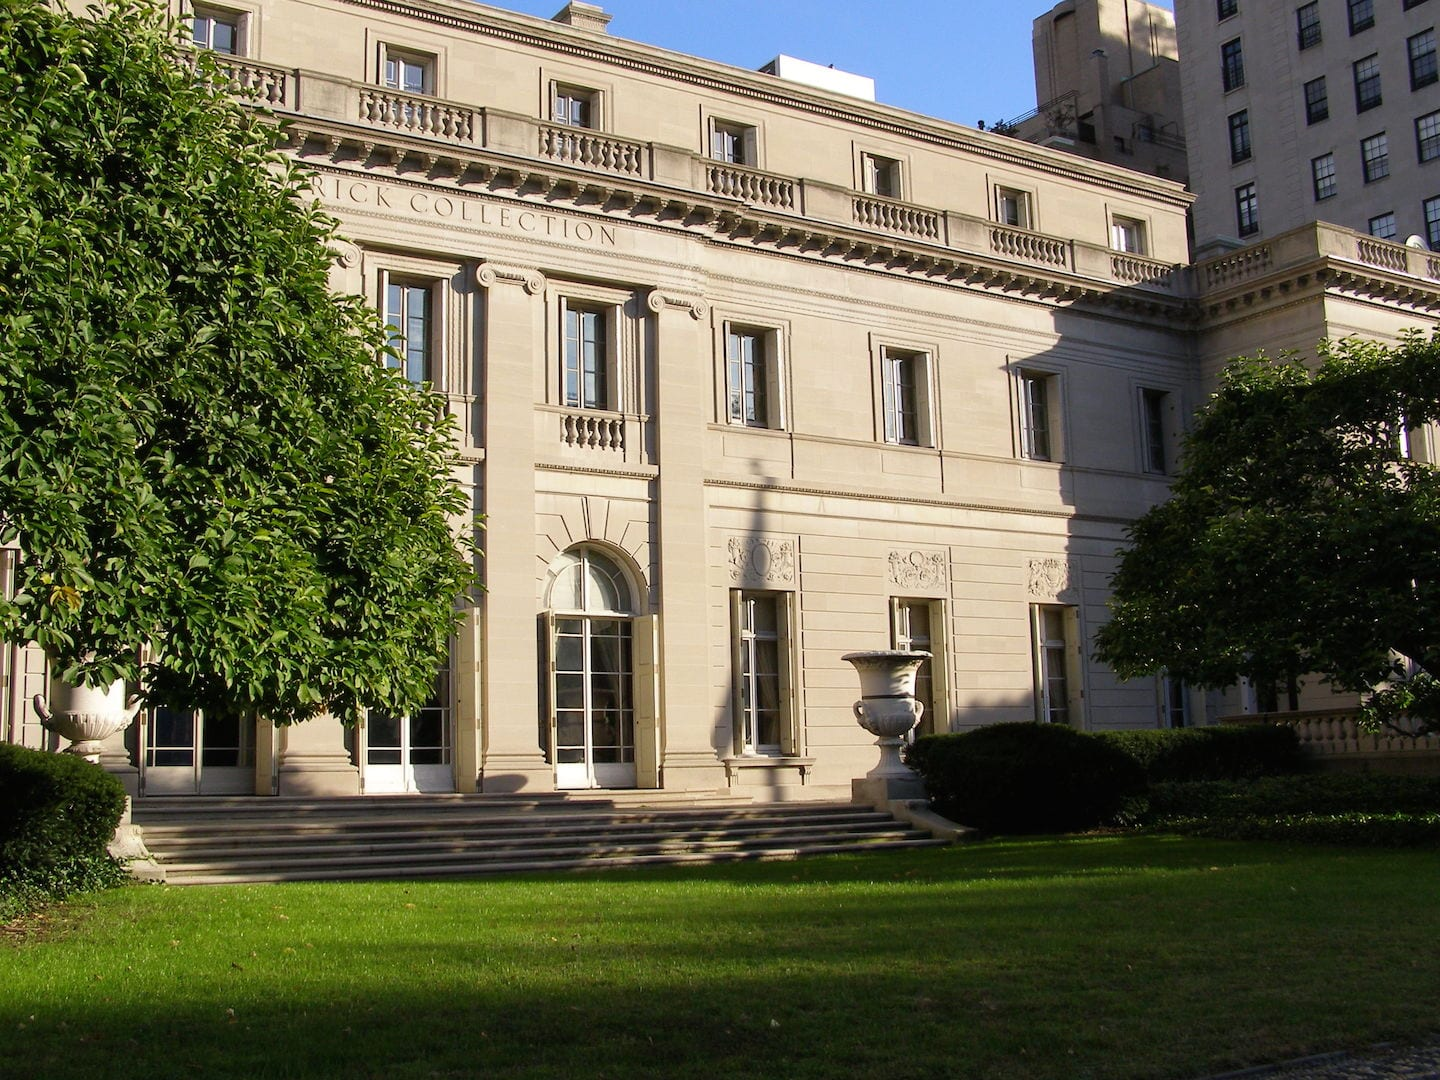 Der Geheimtipp unter den Museen: The Frick Collection